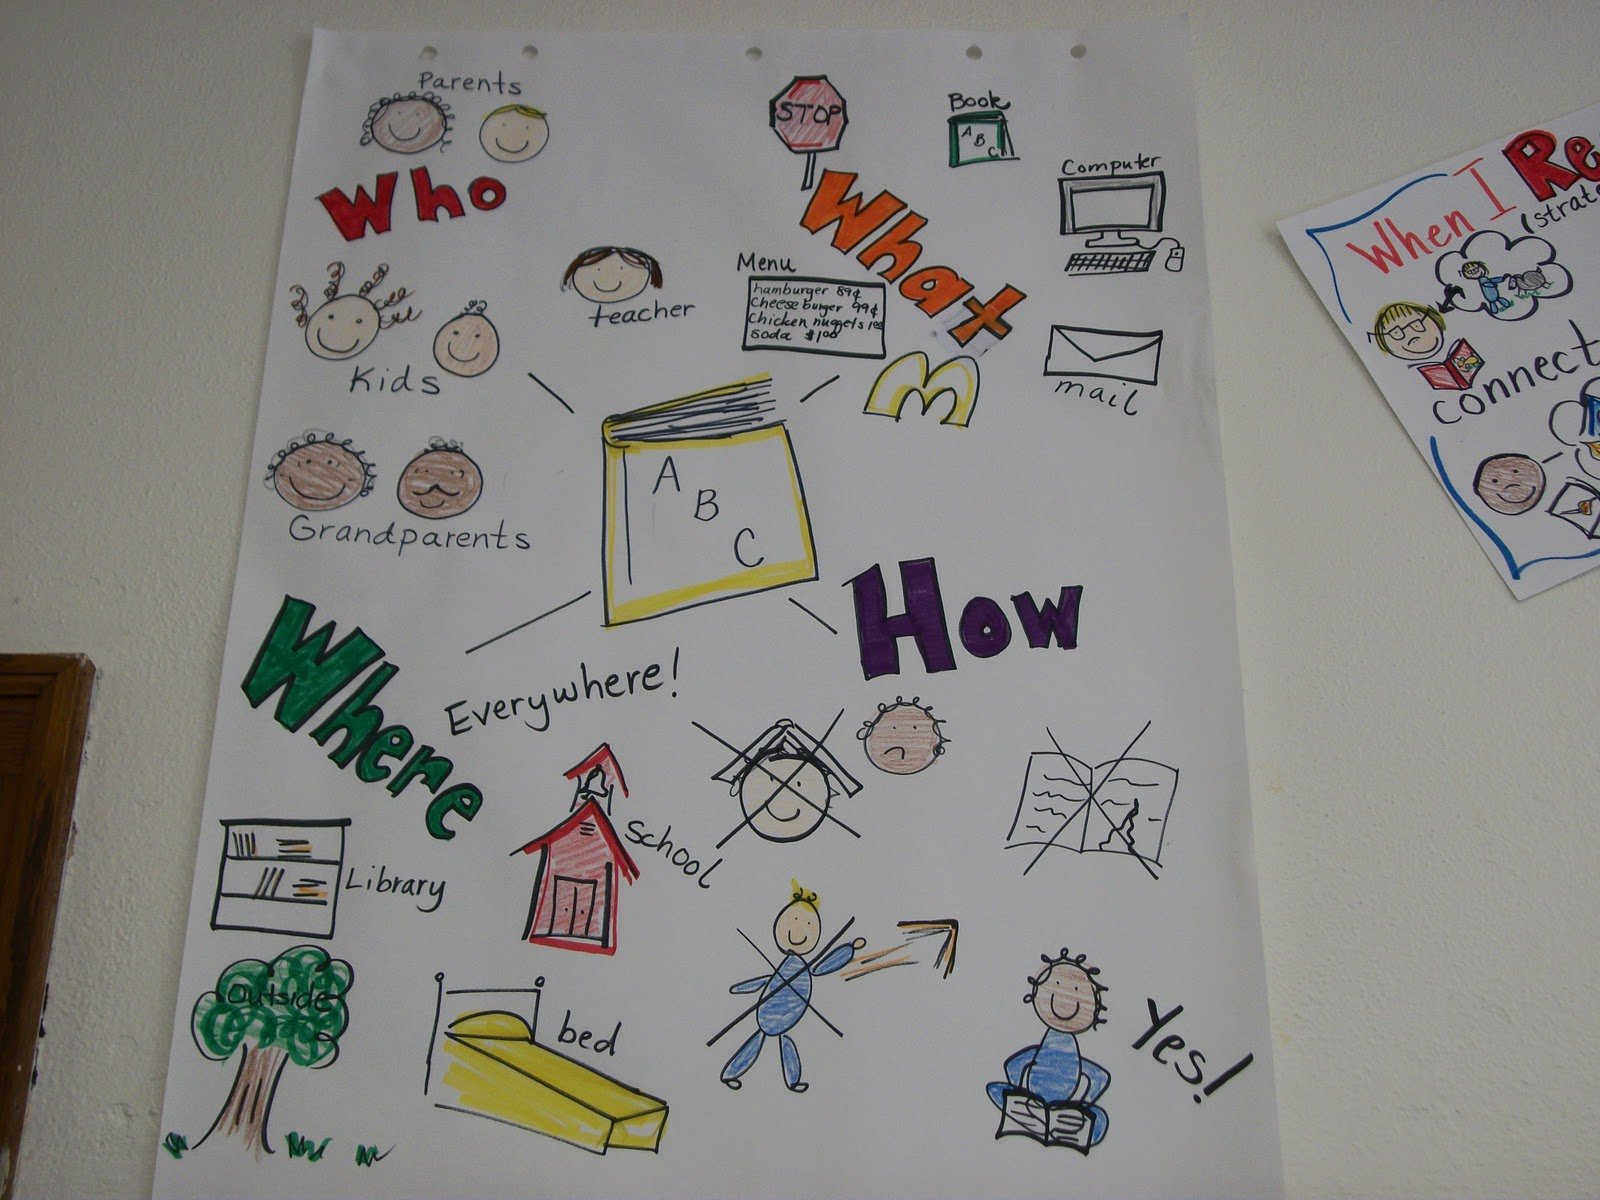 Anchor Charts in Kindergarten http://spotlightonkindergarten.blogspot.com/2011/09/crazy-for-anchor-charts.html